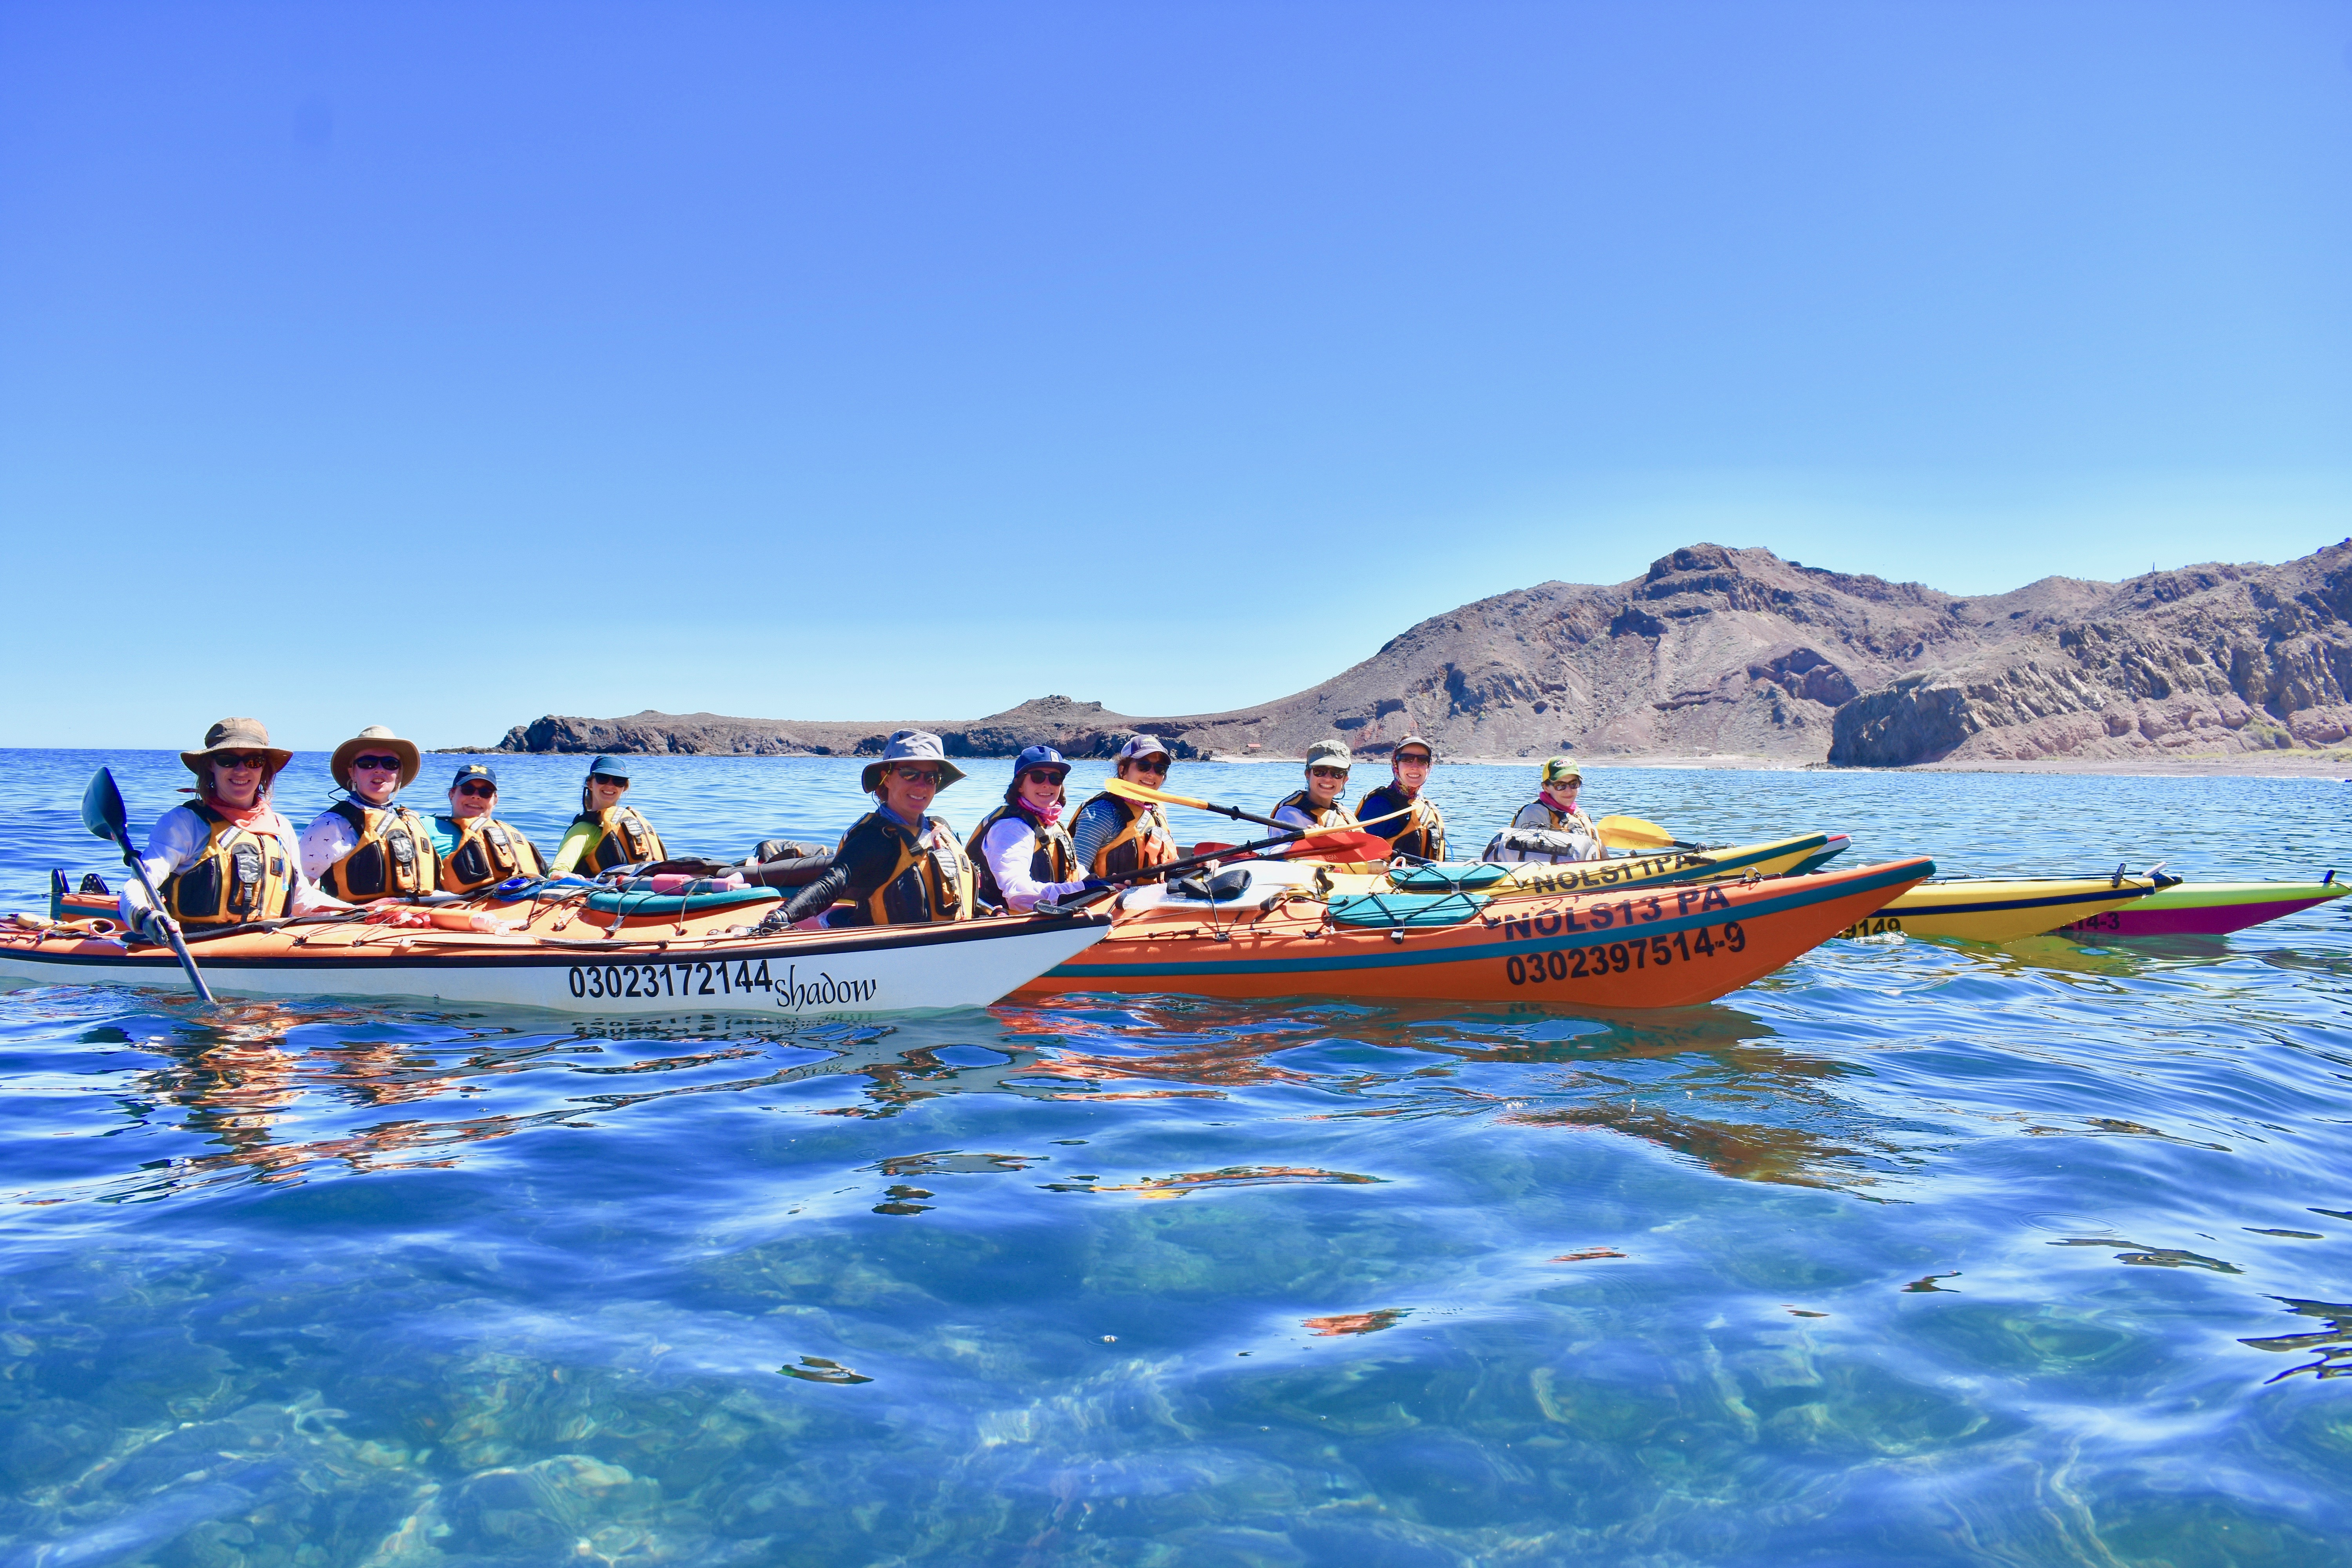 Women wearing sun hats and life preservers in colorful kayaks on clear water in Baja